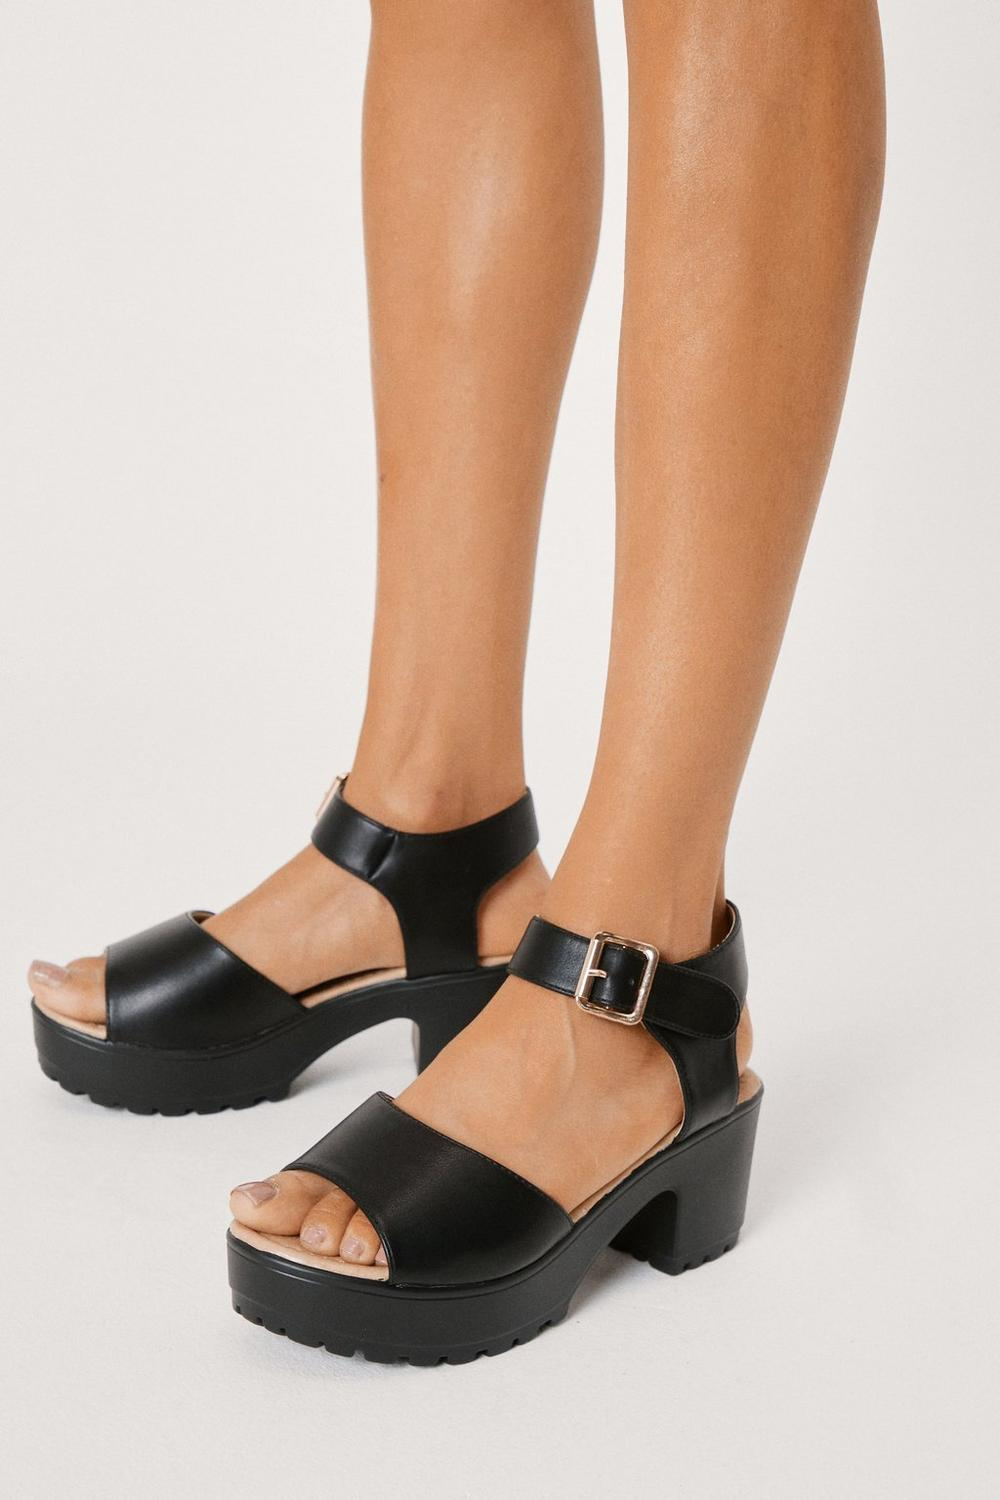 c3277feaca966 Aces High Faux Leather Sandal | Shop Clothes at Nasty Gal!